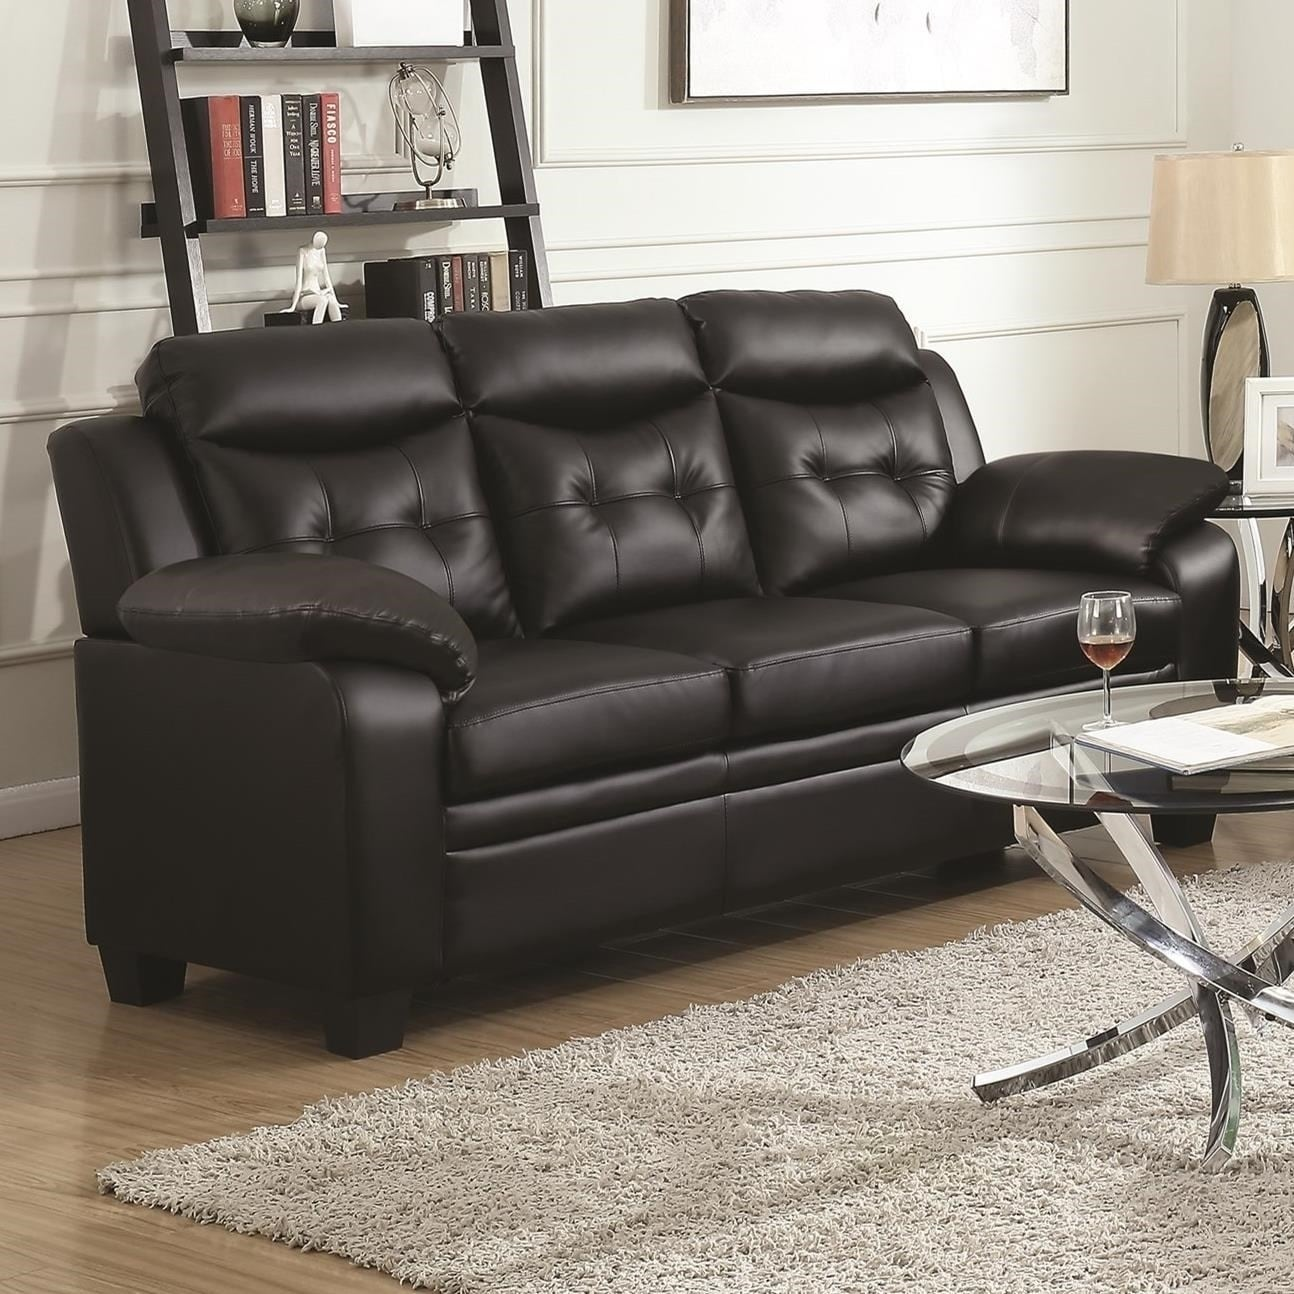 Contemporary Faux Leather & Wood Sofa With Padded Armrests, Rich Black